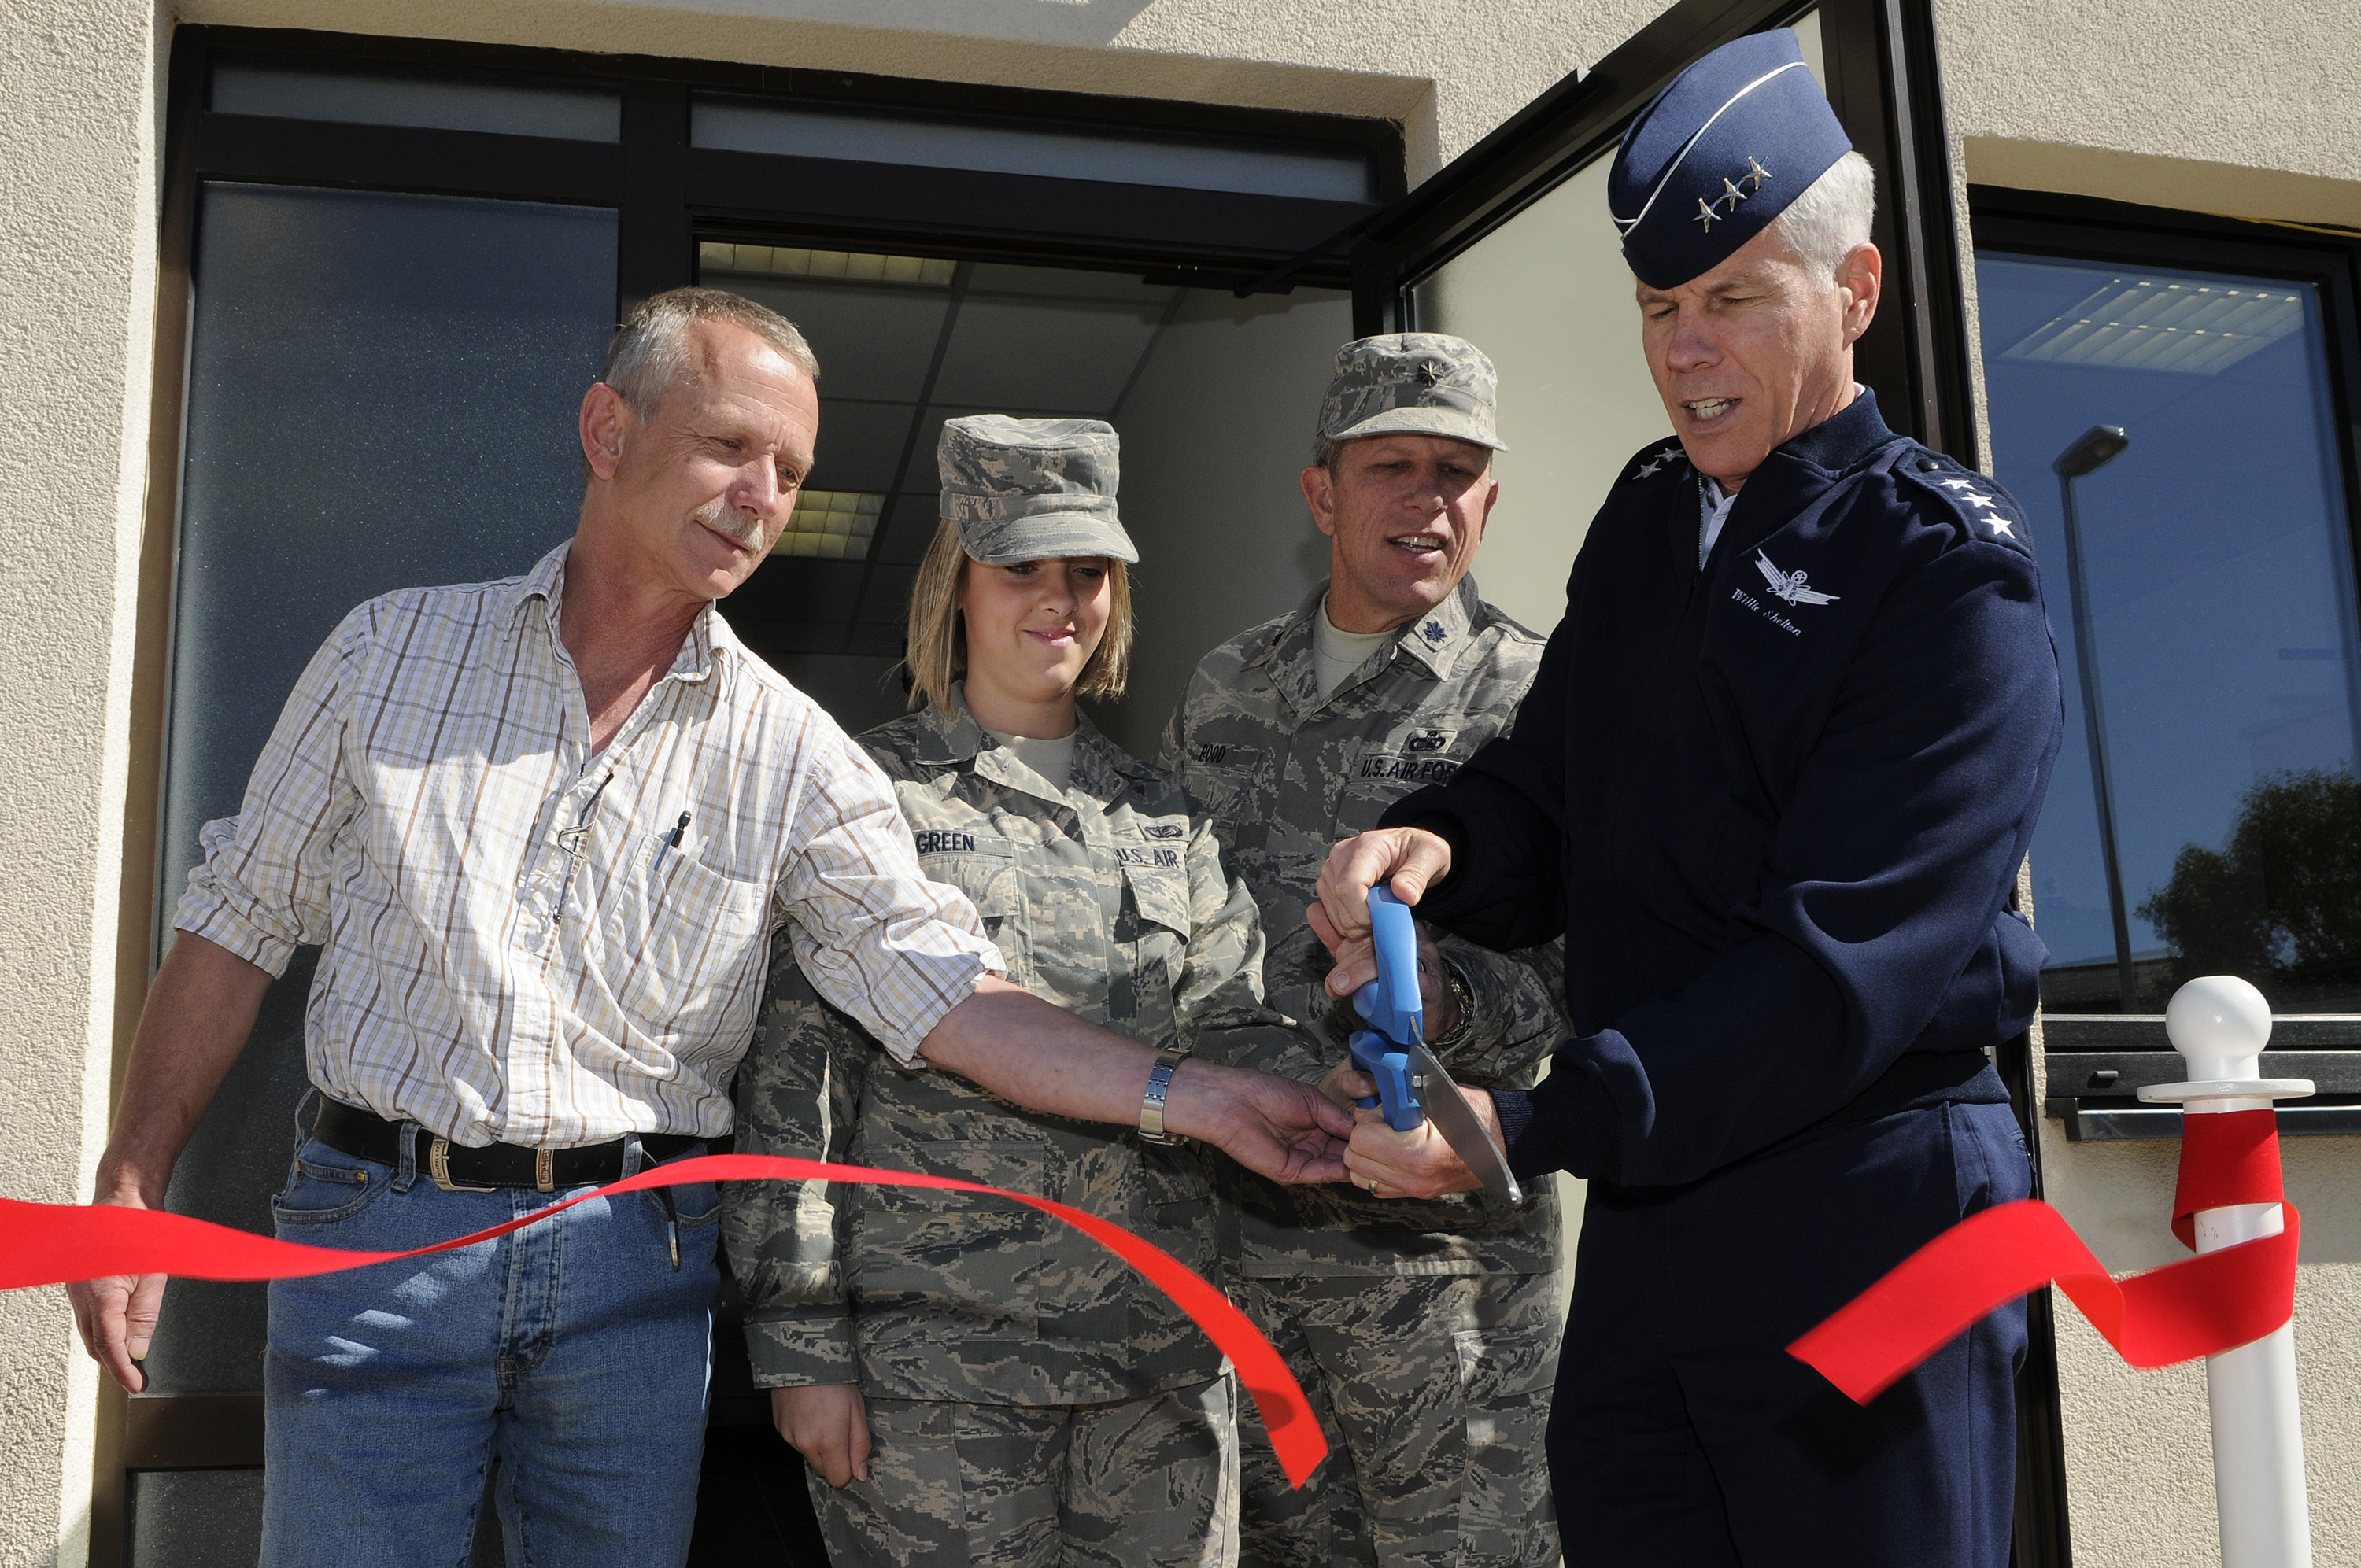 Tremendous Ramstein Opens New Facility Provides It Support Ramstein Download Free Architecture Designs Embacsunscenecom